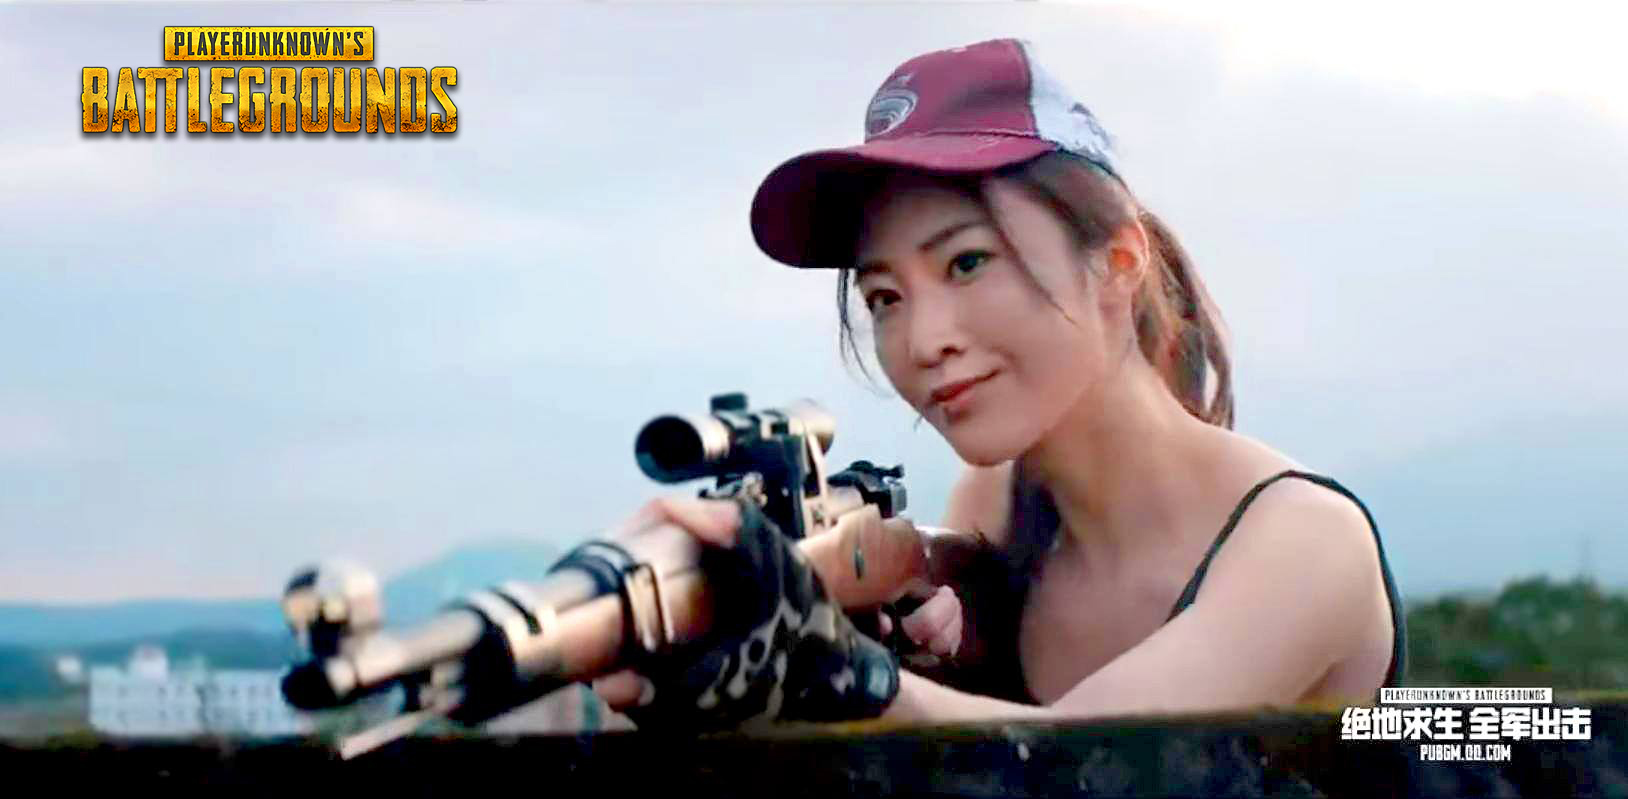 PUBG Has Made A Live Action Trailer And It Looks Amazing